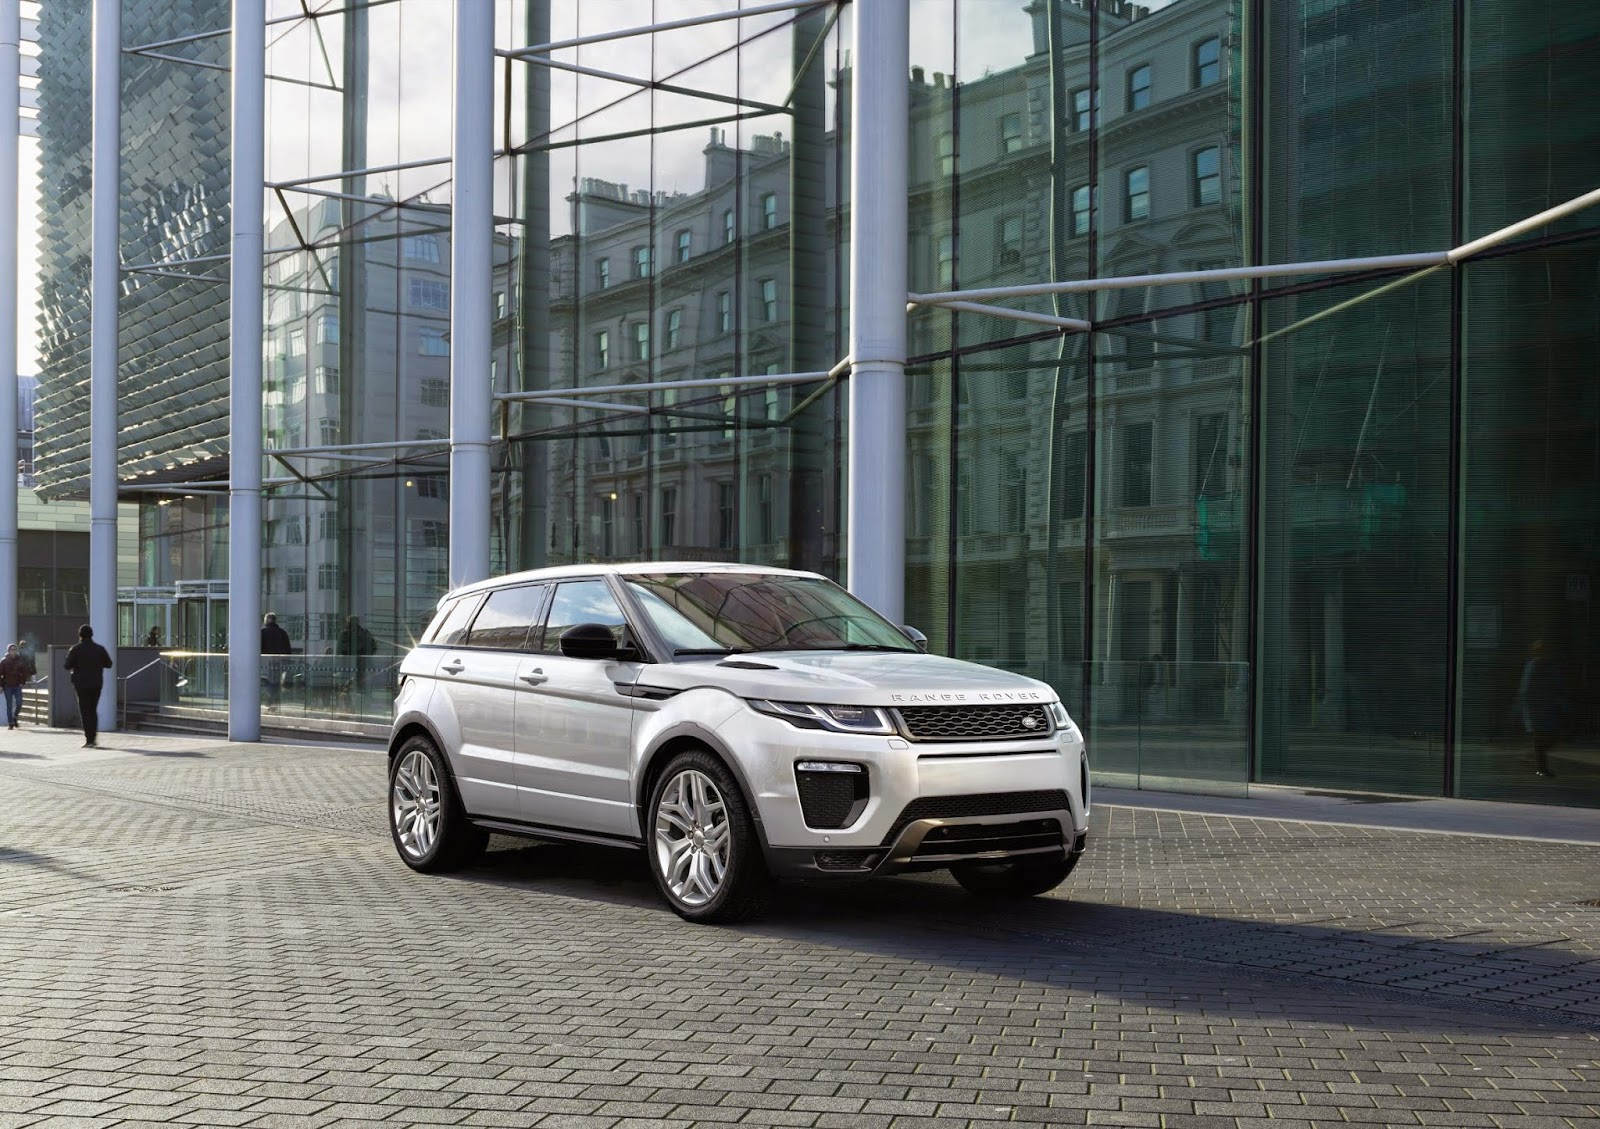 f76c4af9 The wraps have come off the new Range Rover Evoque, billed as the most  efficient production Land Rover ever.